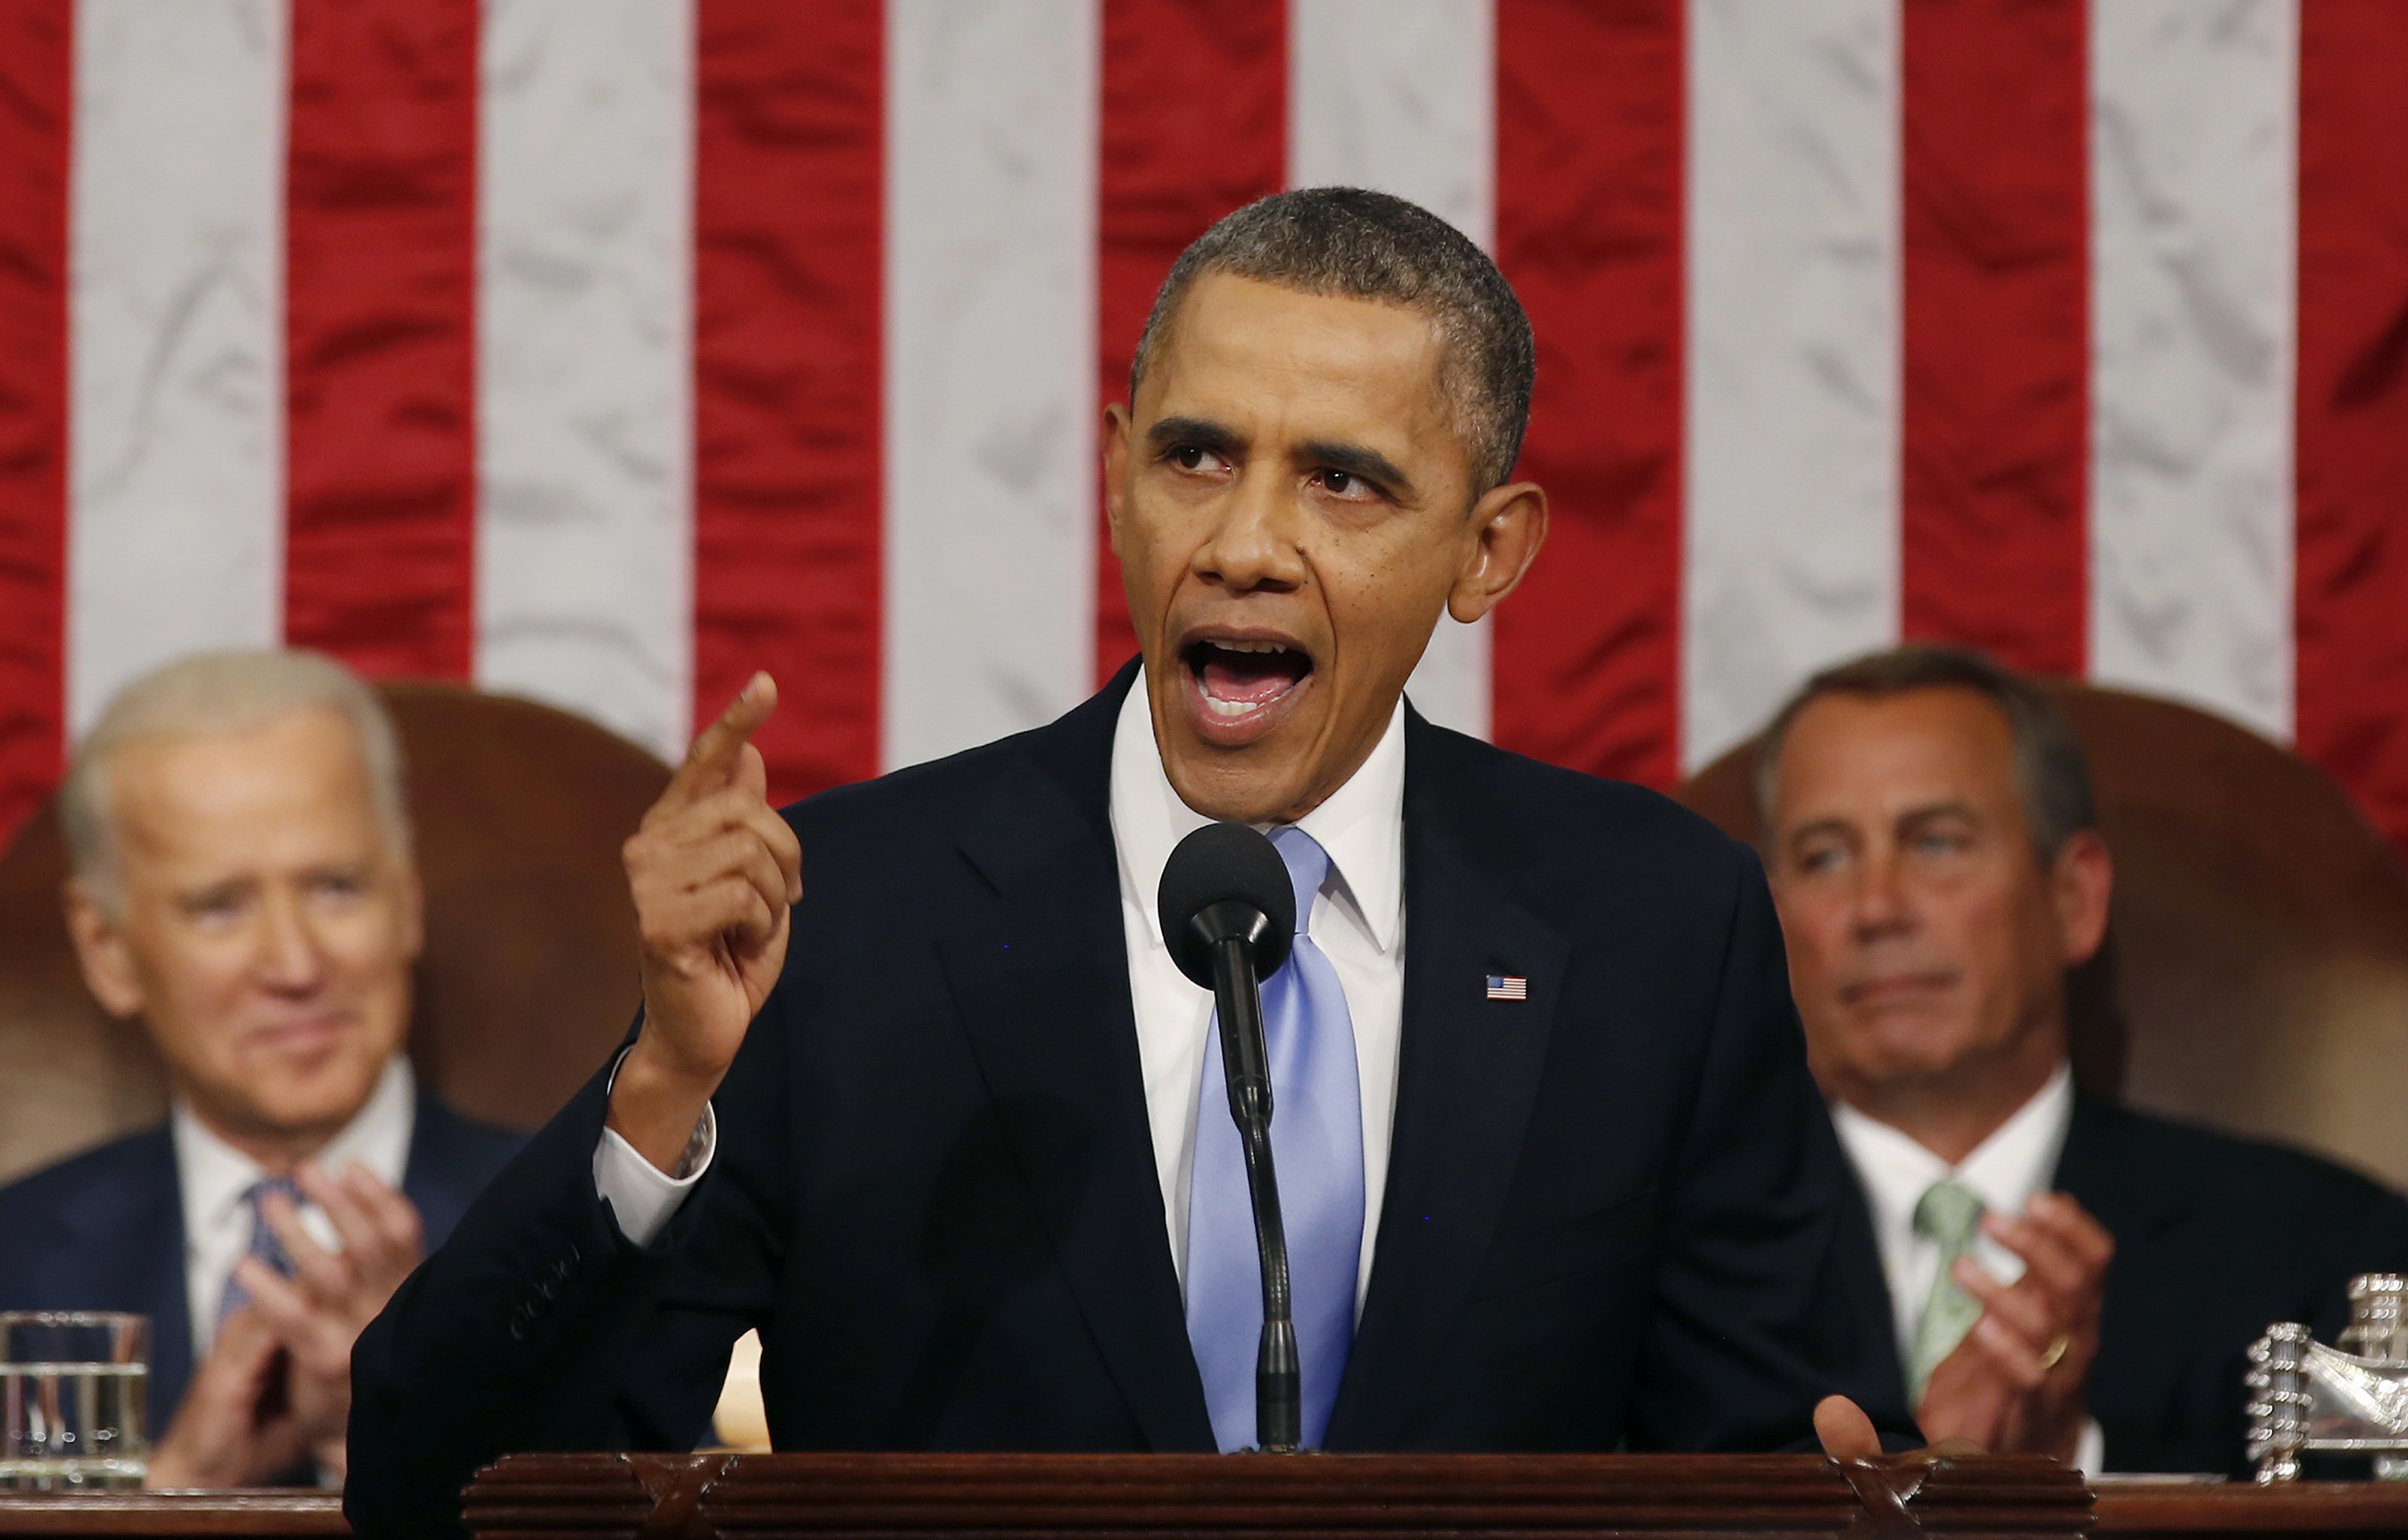 President Barack Obama delivering his State of the Union address on January 28, 2014.